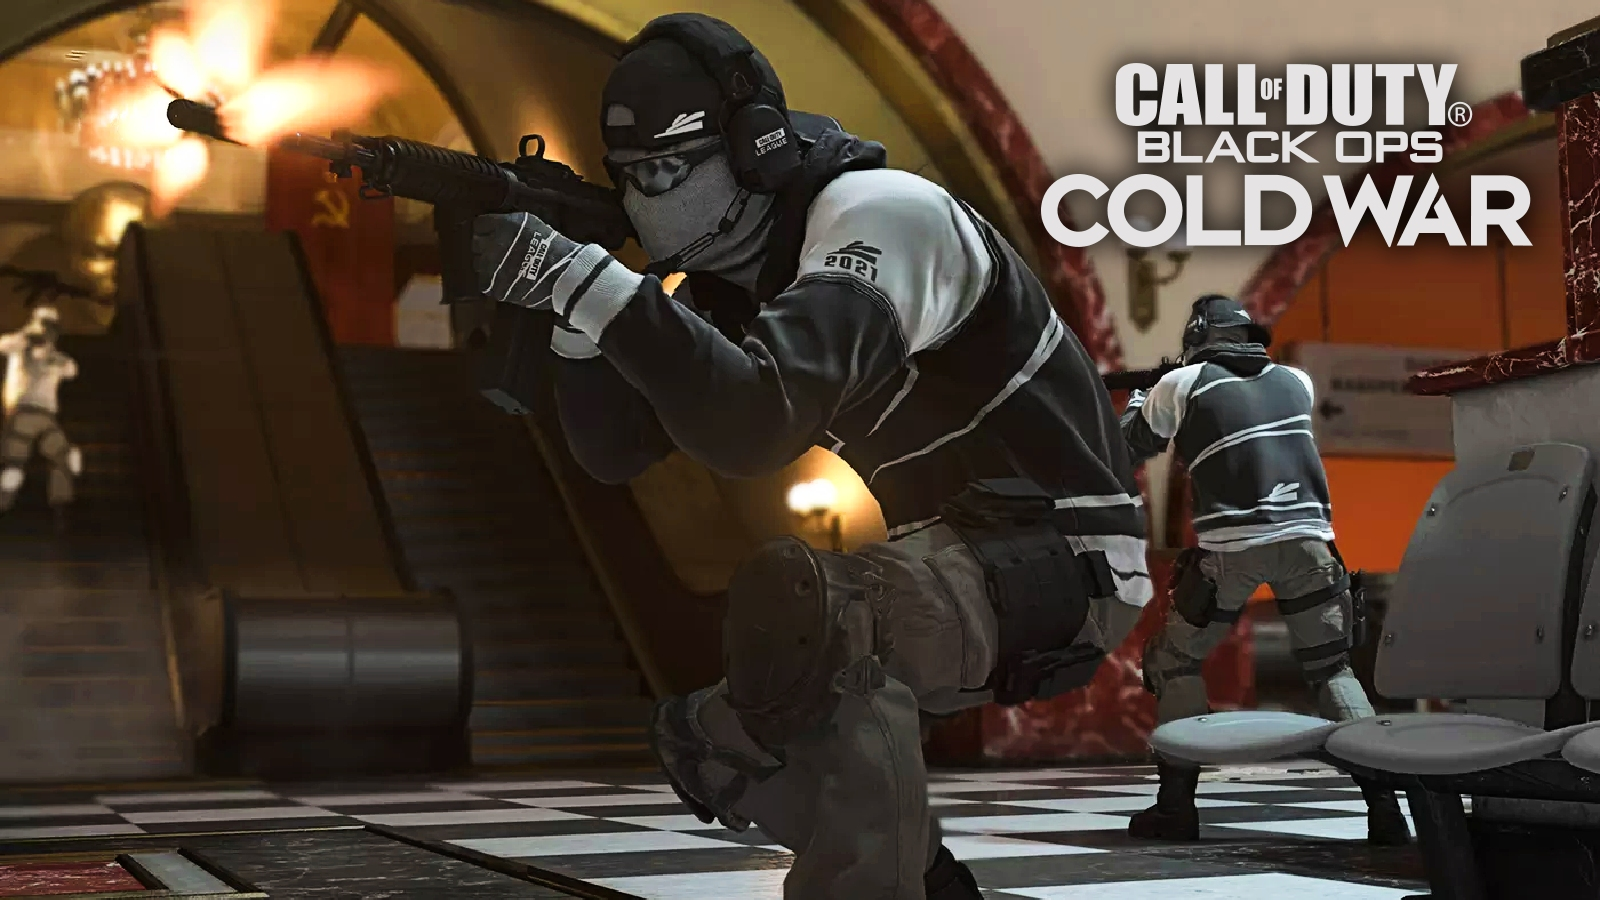 Black Ops Cold War CDL skins league play on moscow